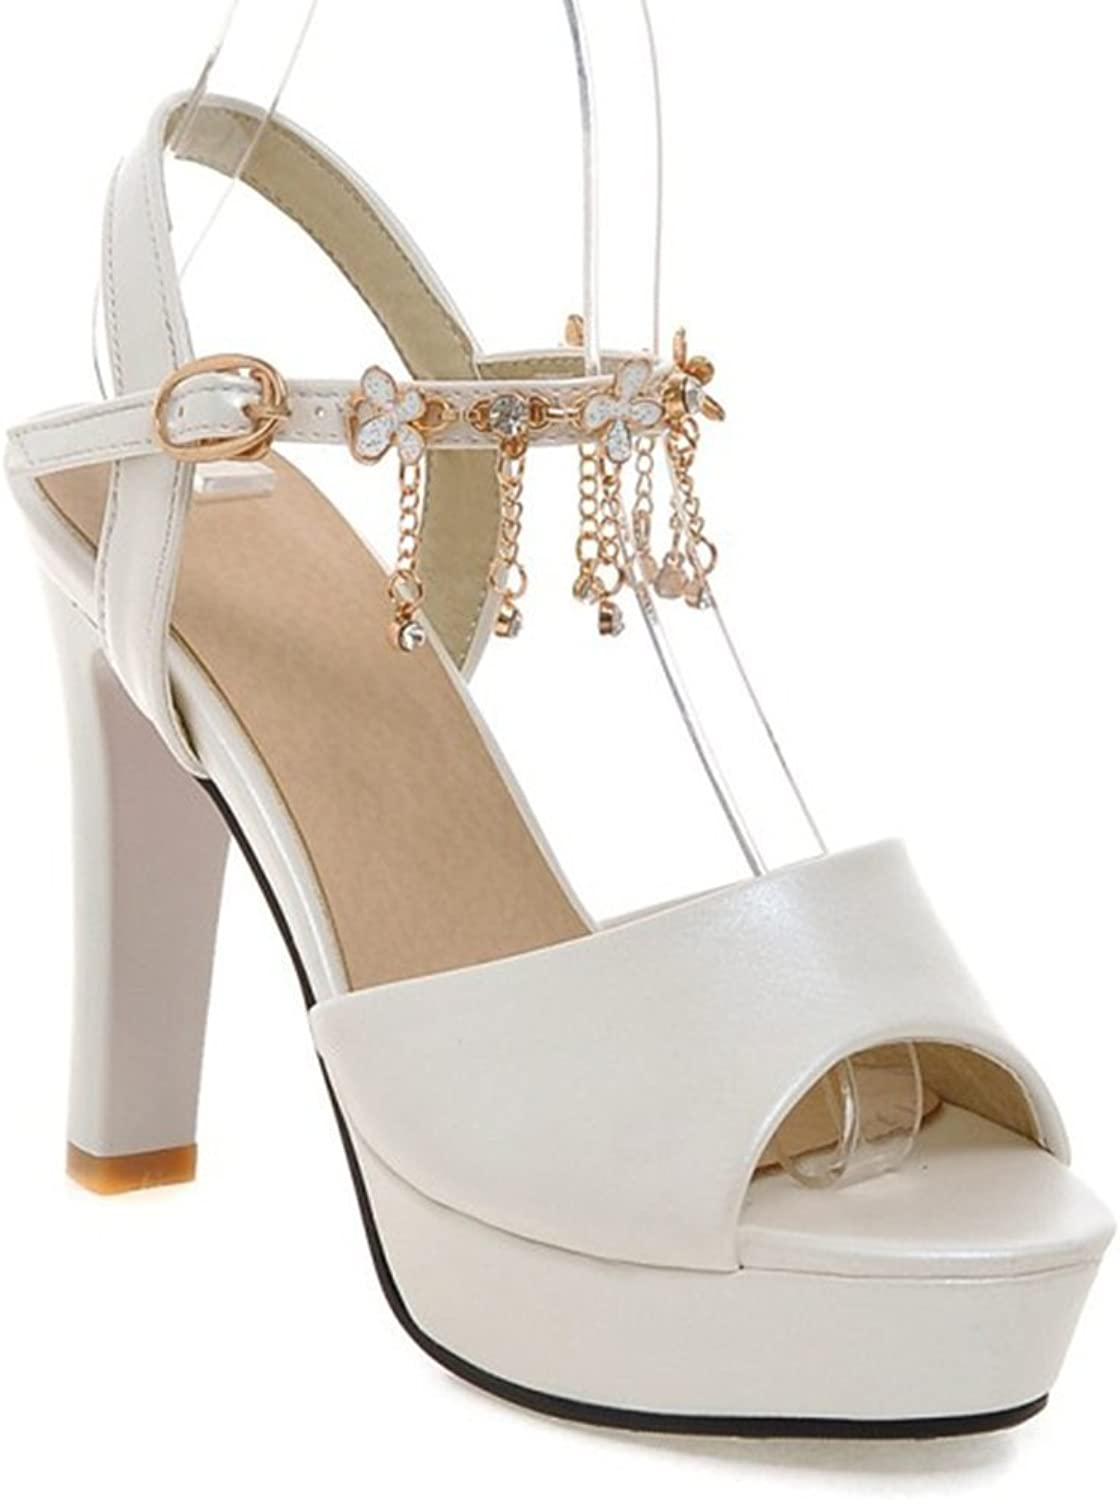 Colnsky Women's Rhinestone Chain Strappy Peep Toe Platform Sandals Chunky High Heel Summer shoes